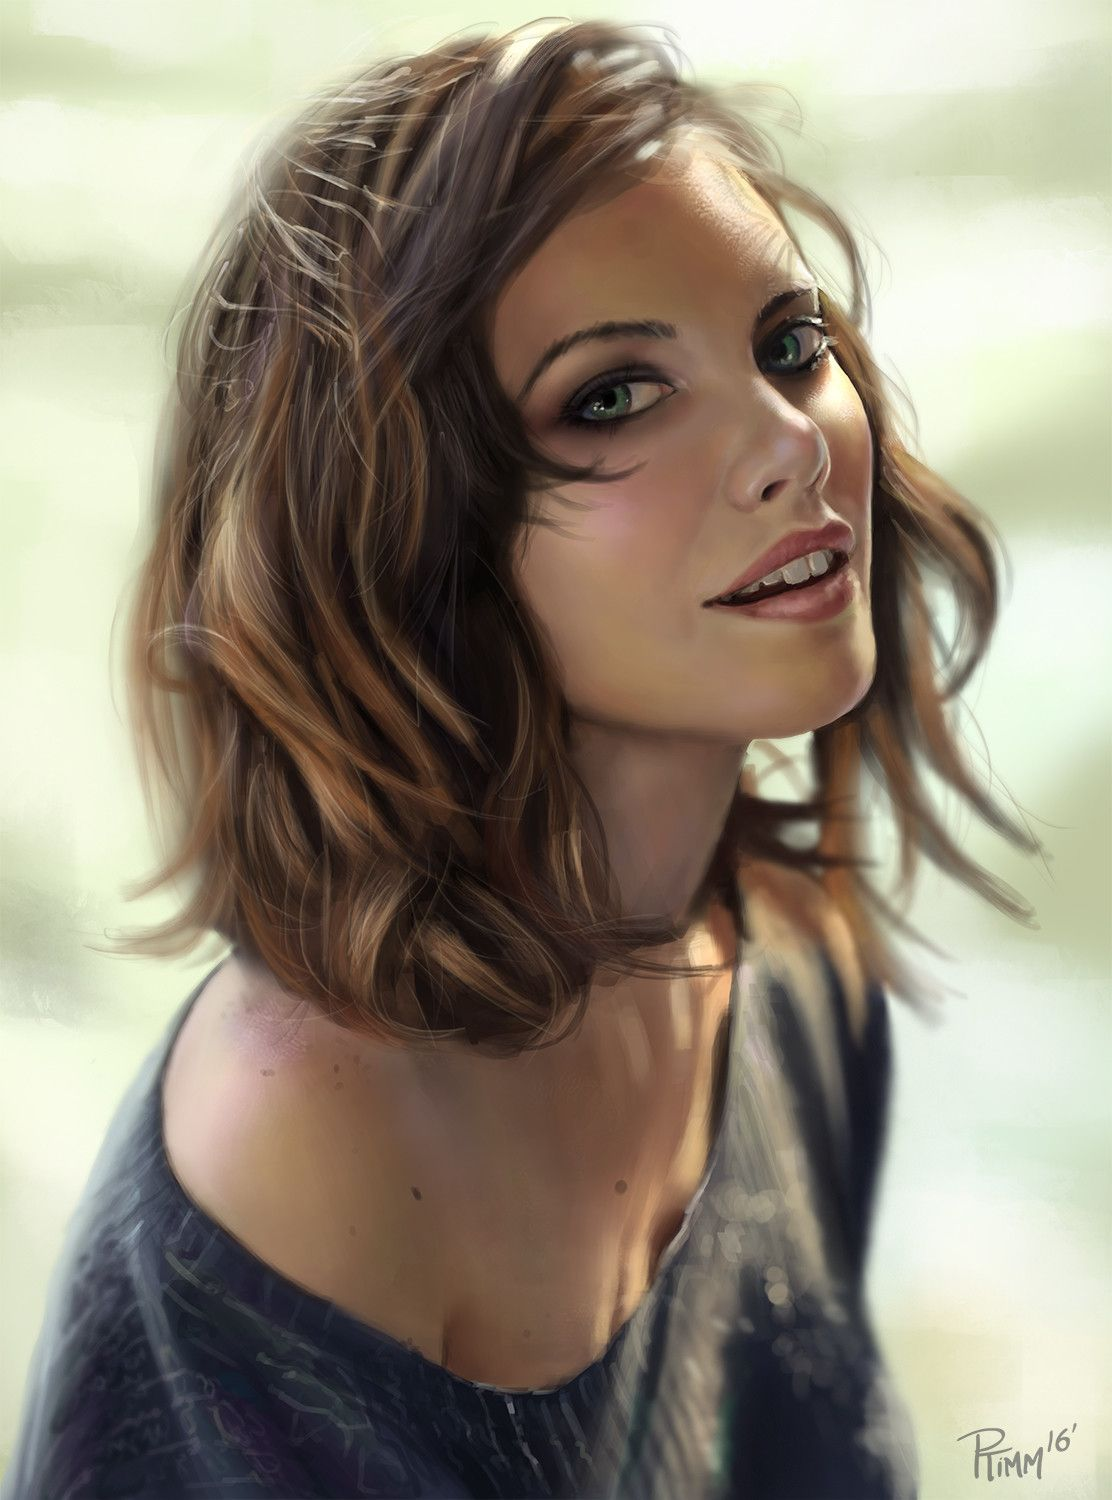 Lauren Cohan Study, Andy Timm on ArtStation at https://www.artstation.com/artwork/eDq3D